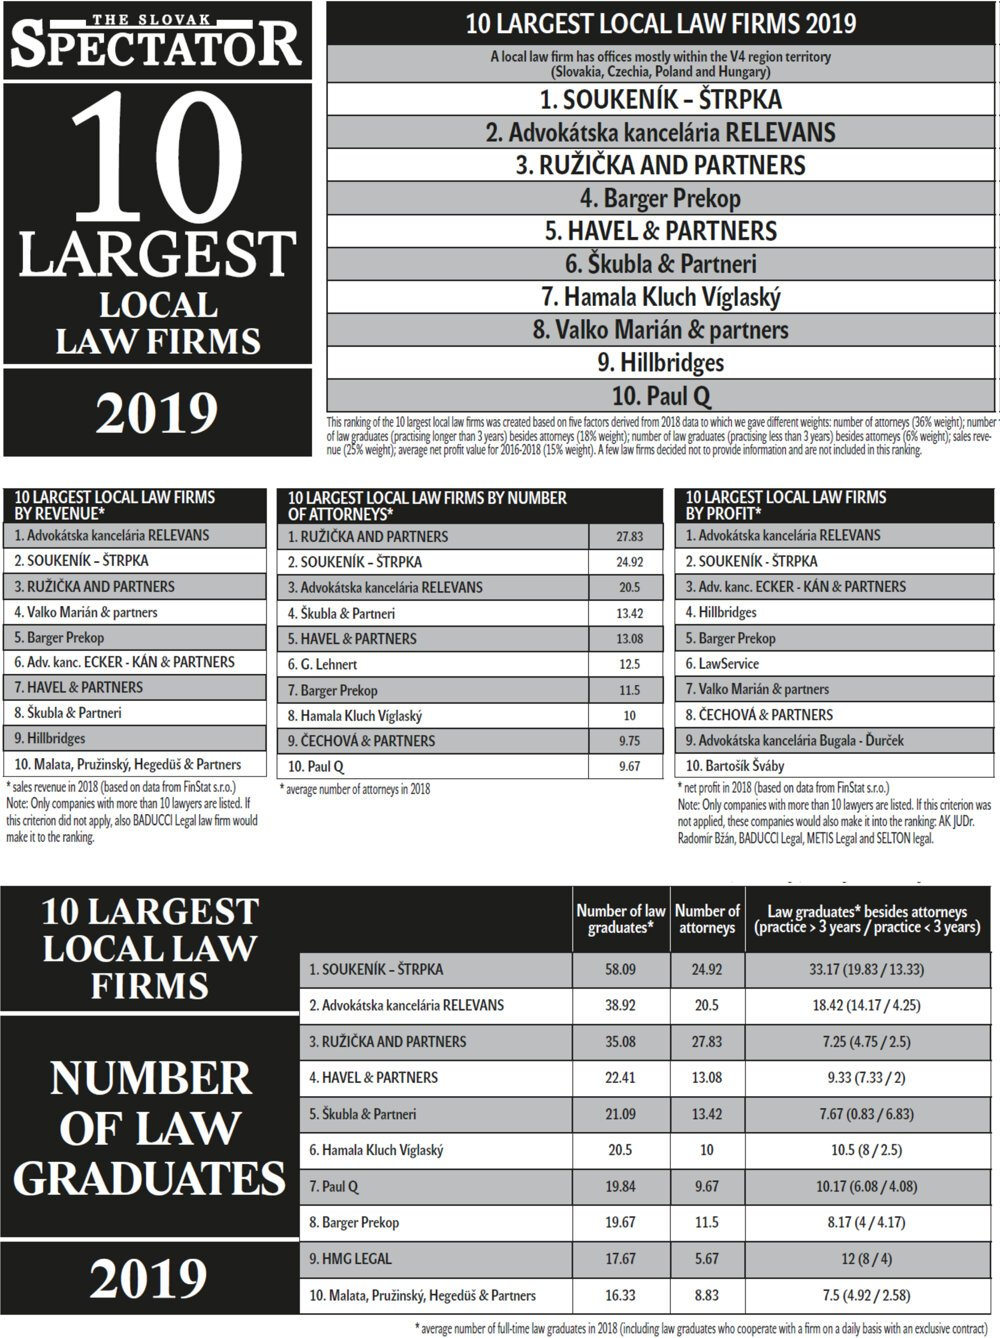 Largest local law firms